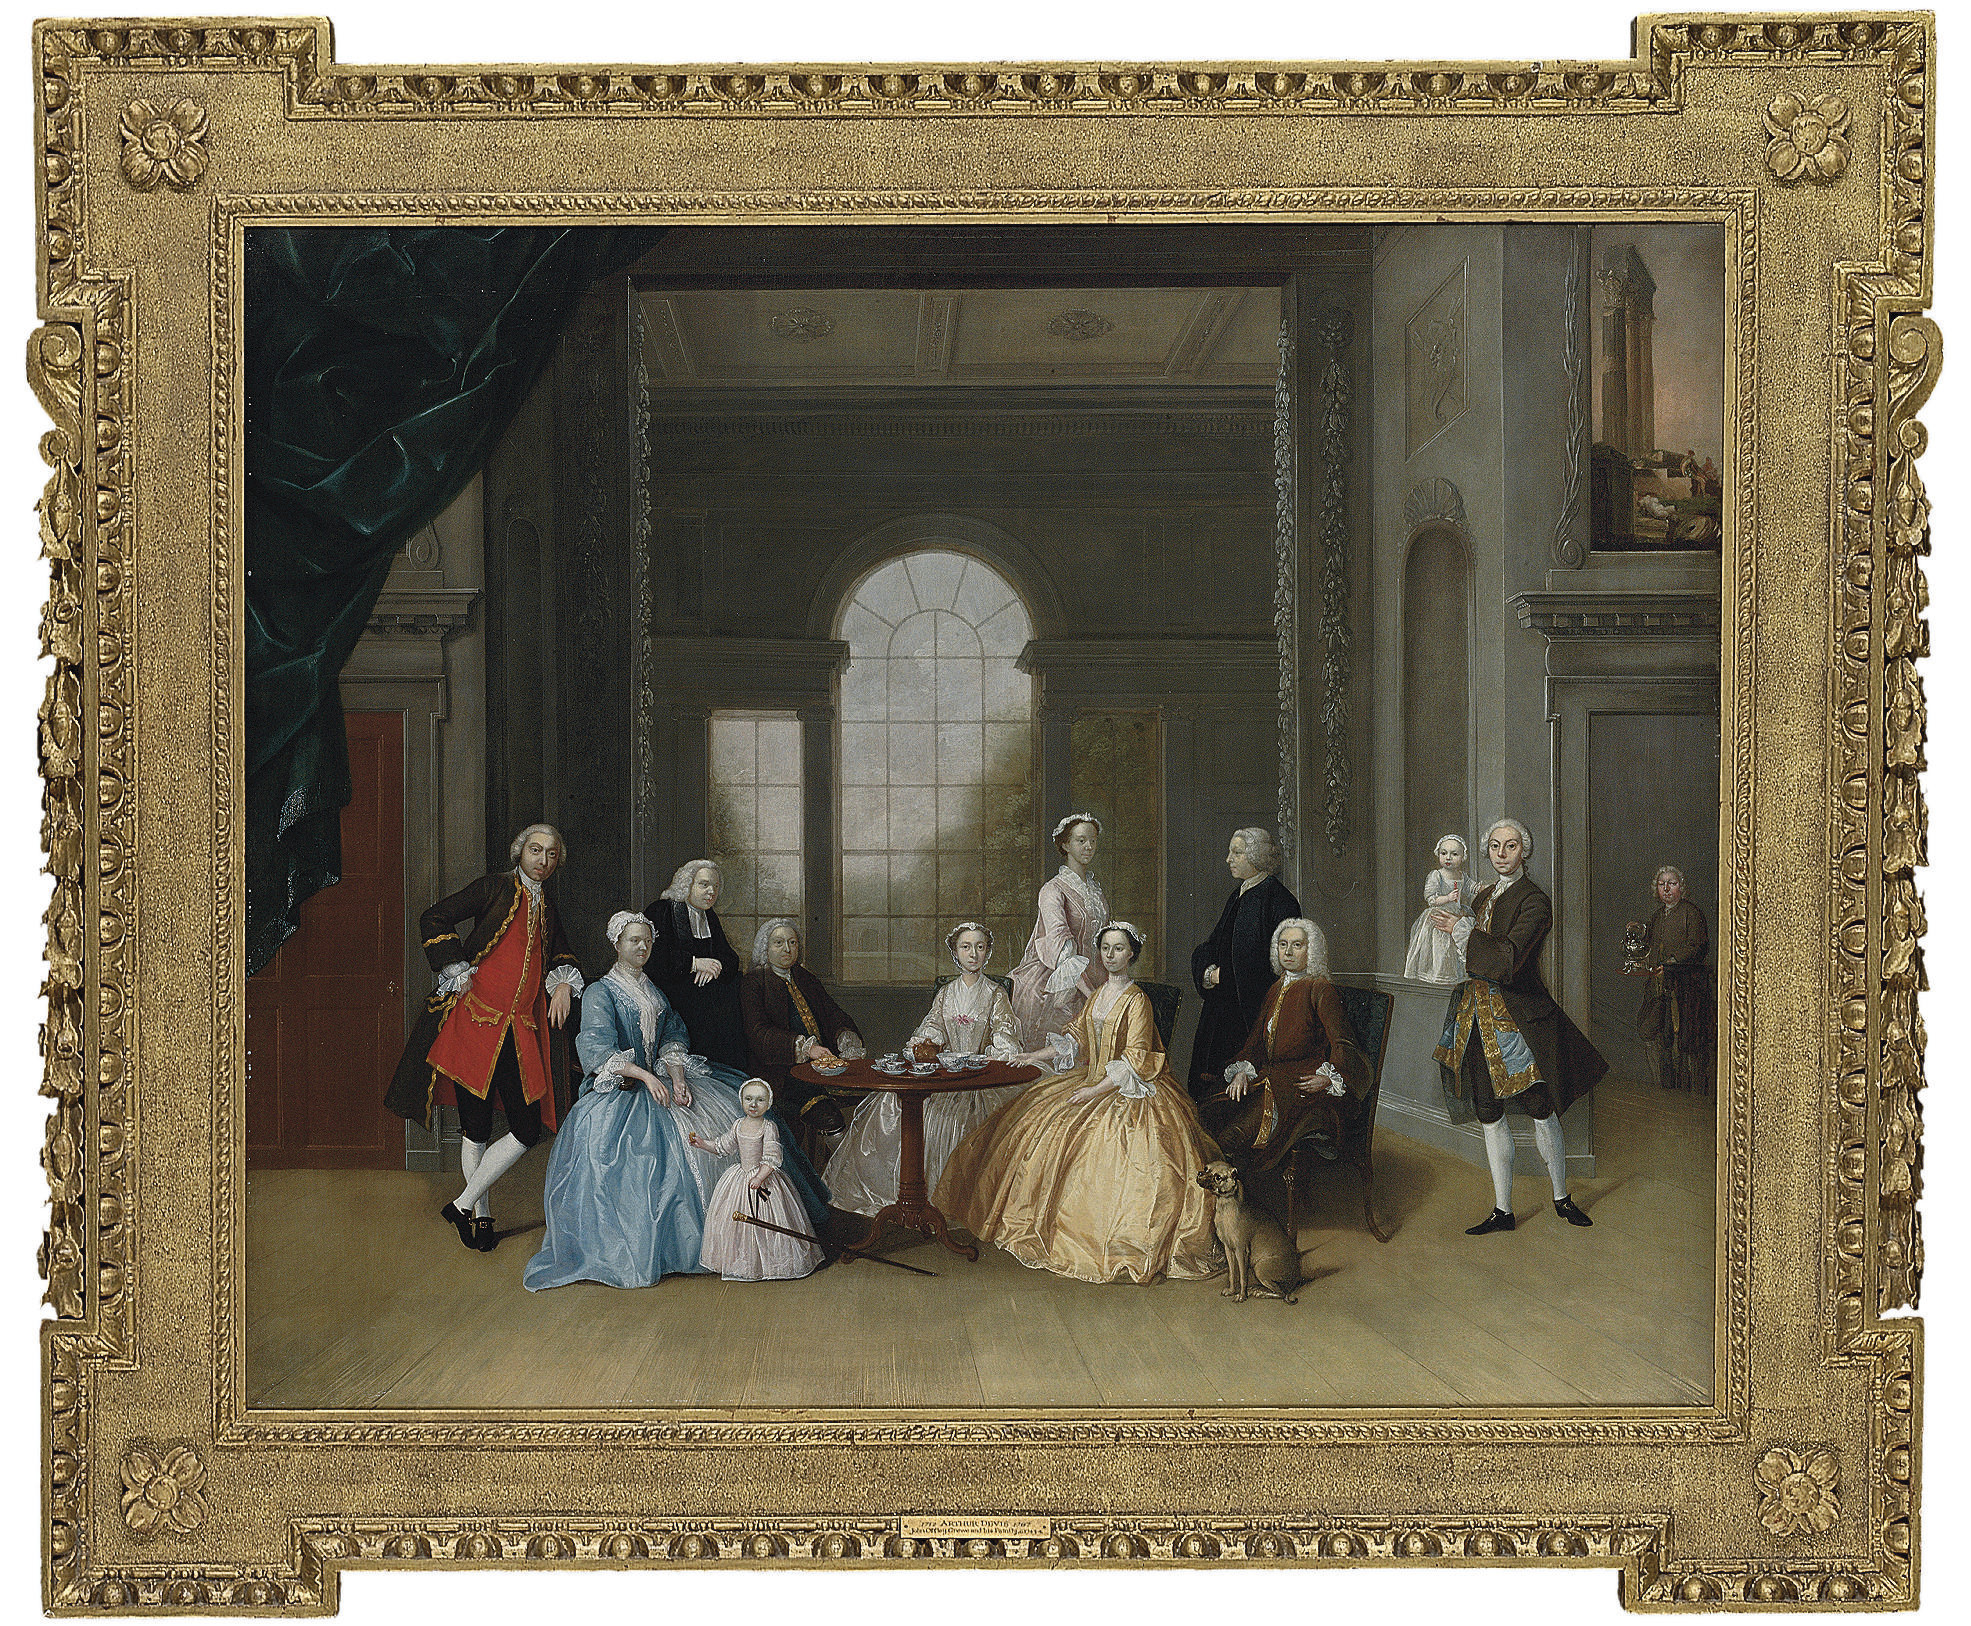 Group Portrait of John Offley Crewe and his family, taking tea around a tripod table in an interior, with a servant with a silver hot water- kettle and heater climbing the stairs to the room, a Venetian window overlooking a garden with a pond beyond